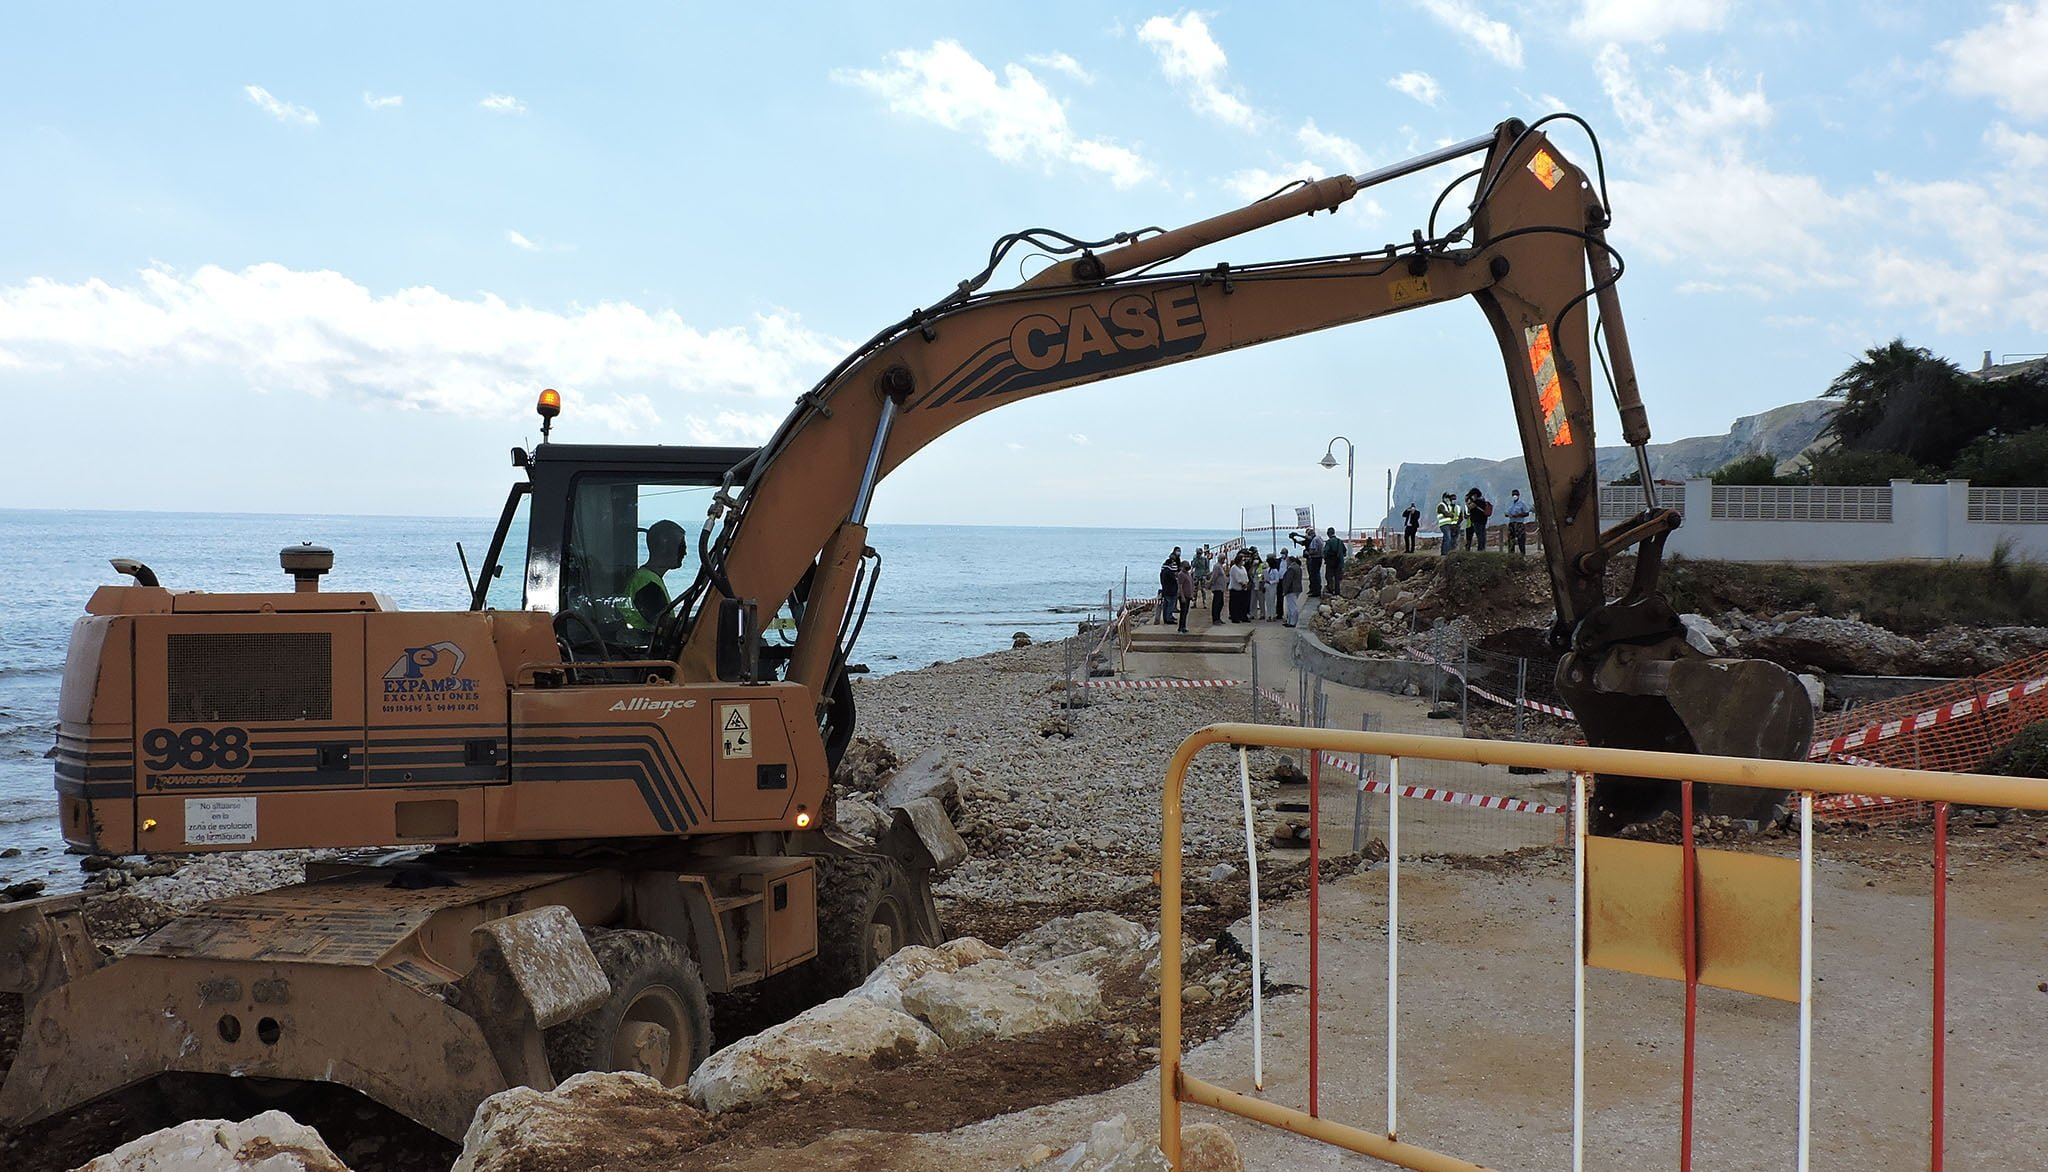 Shovel working on the beach of Les Rotes during the visit of the delegate of the Gobieron